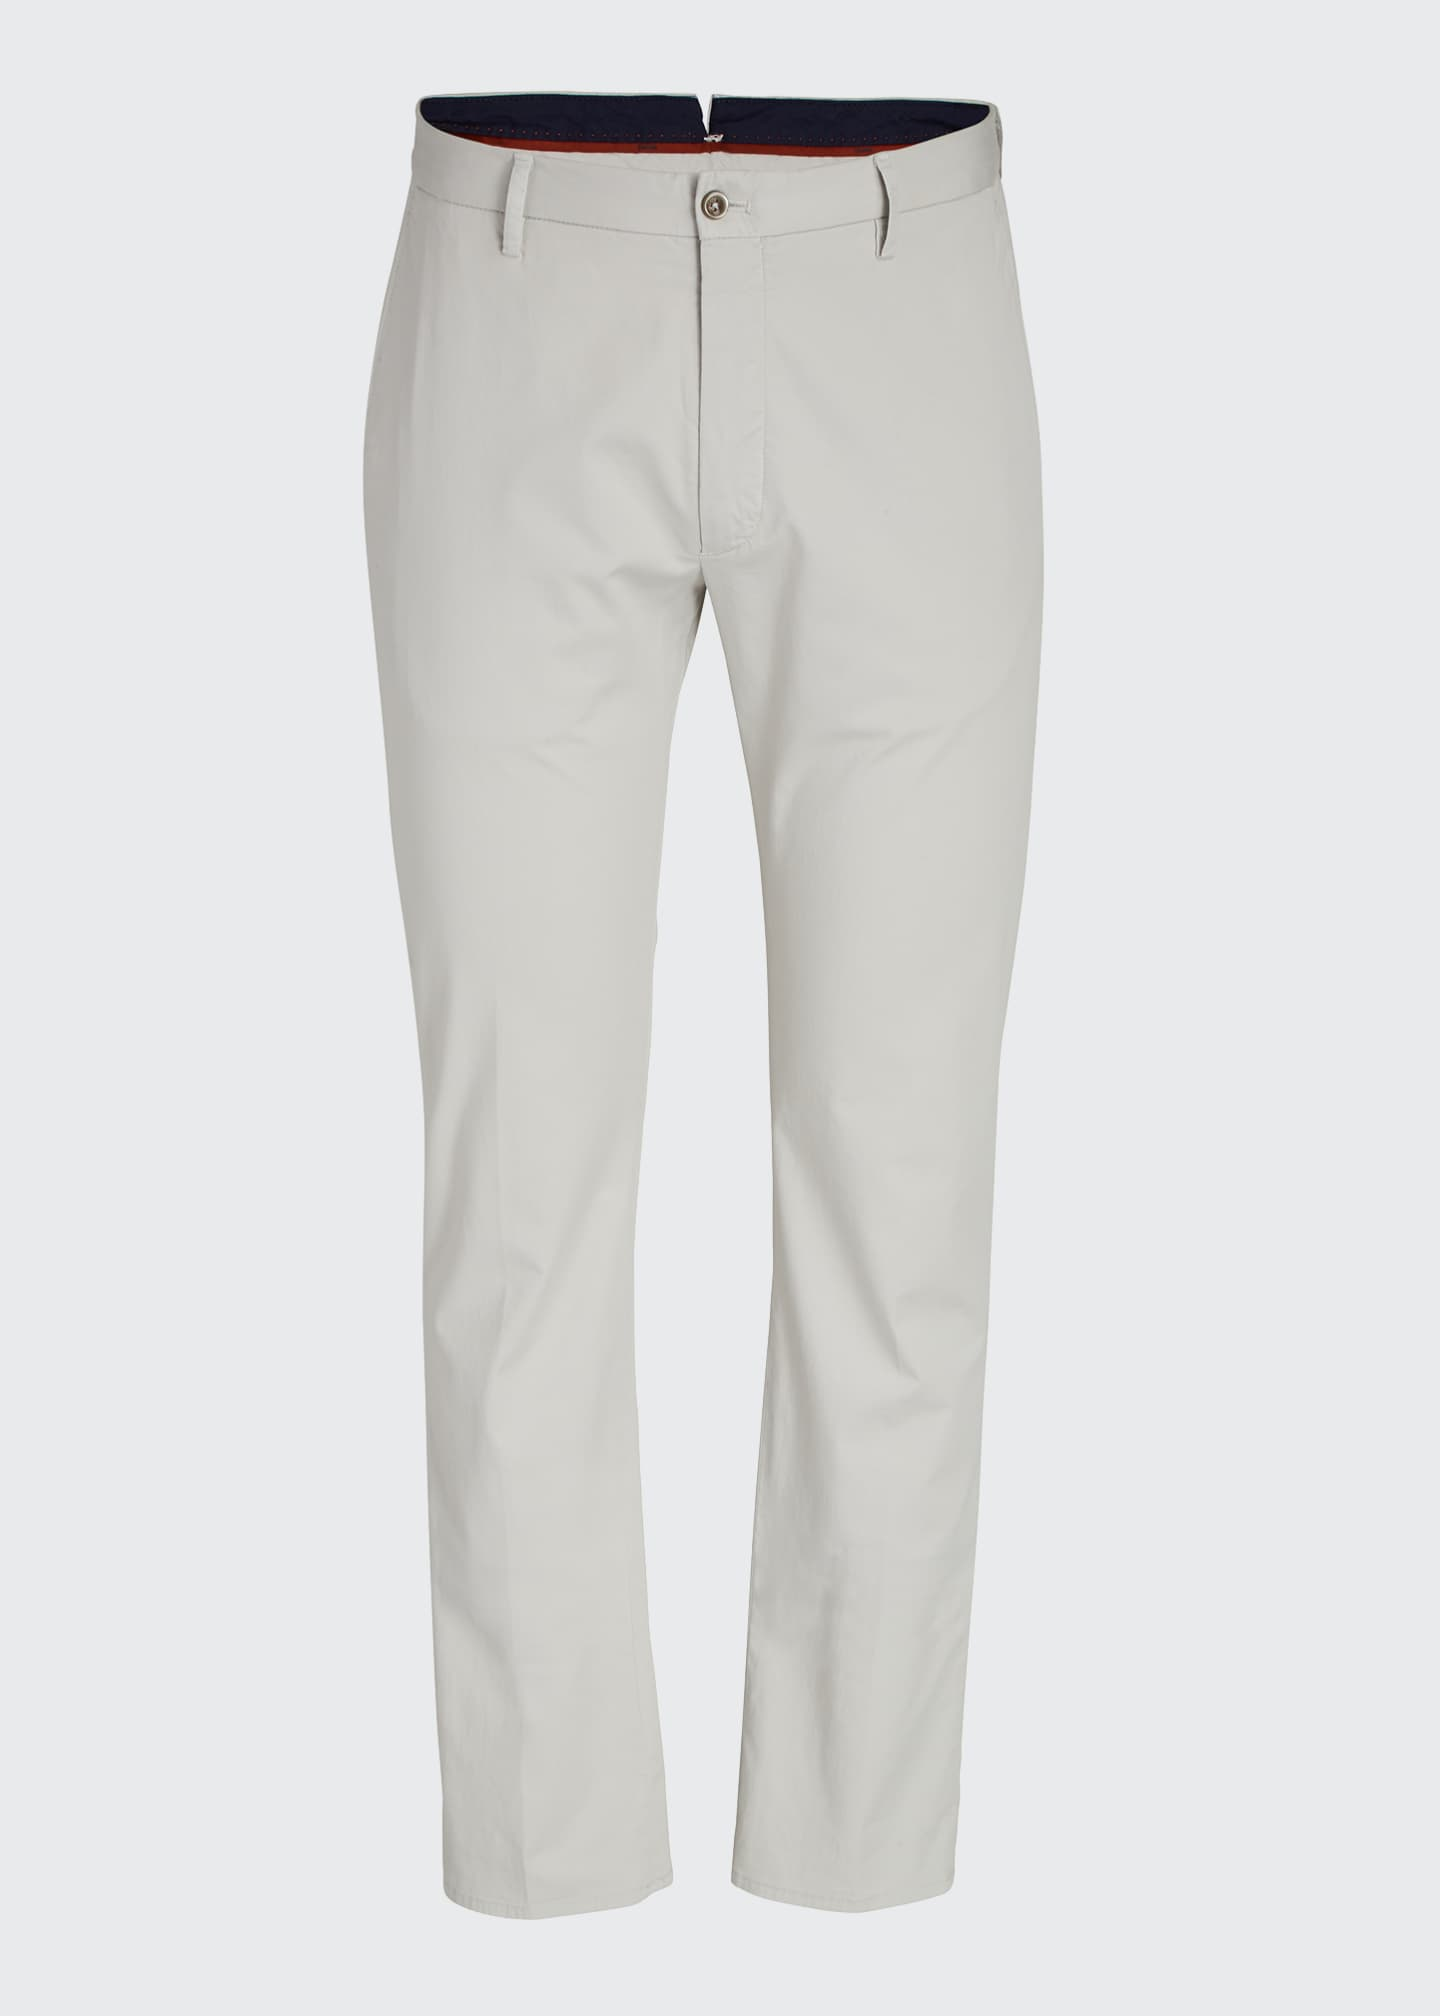 Image 5 of 5: Men's Garment Dye Stretch Poplin Pants